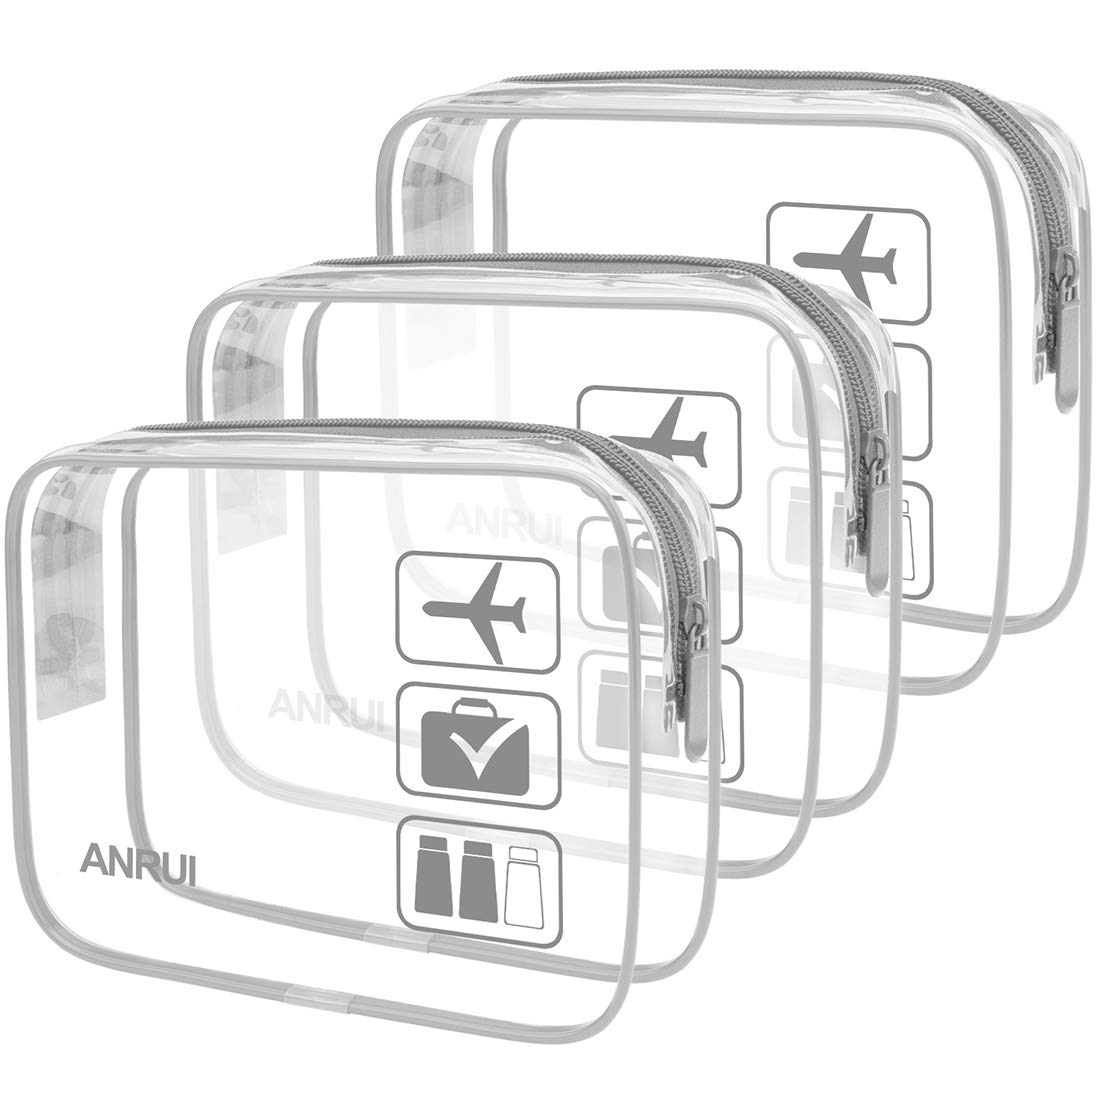 Anrui Clear Toiletry Bag Tsa Approved Travel Carry On Airport Airline Compliant Bag Quart Sized 3 1 1 Kit Travel Luggage Pouch 3 Pack Grey